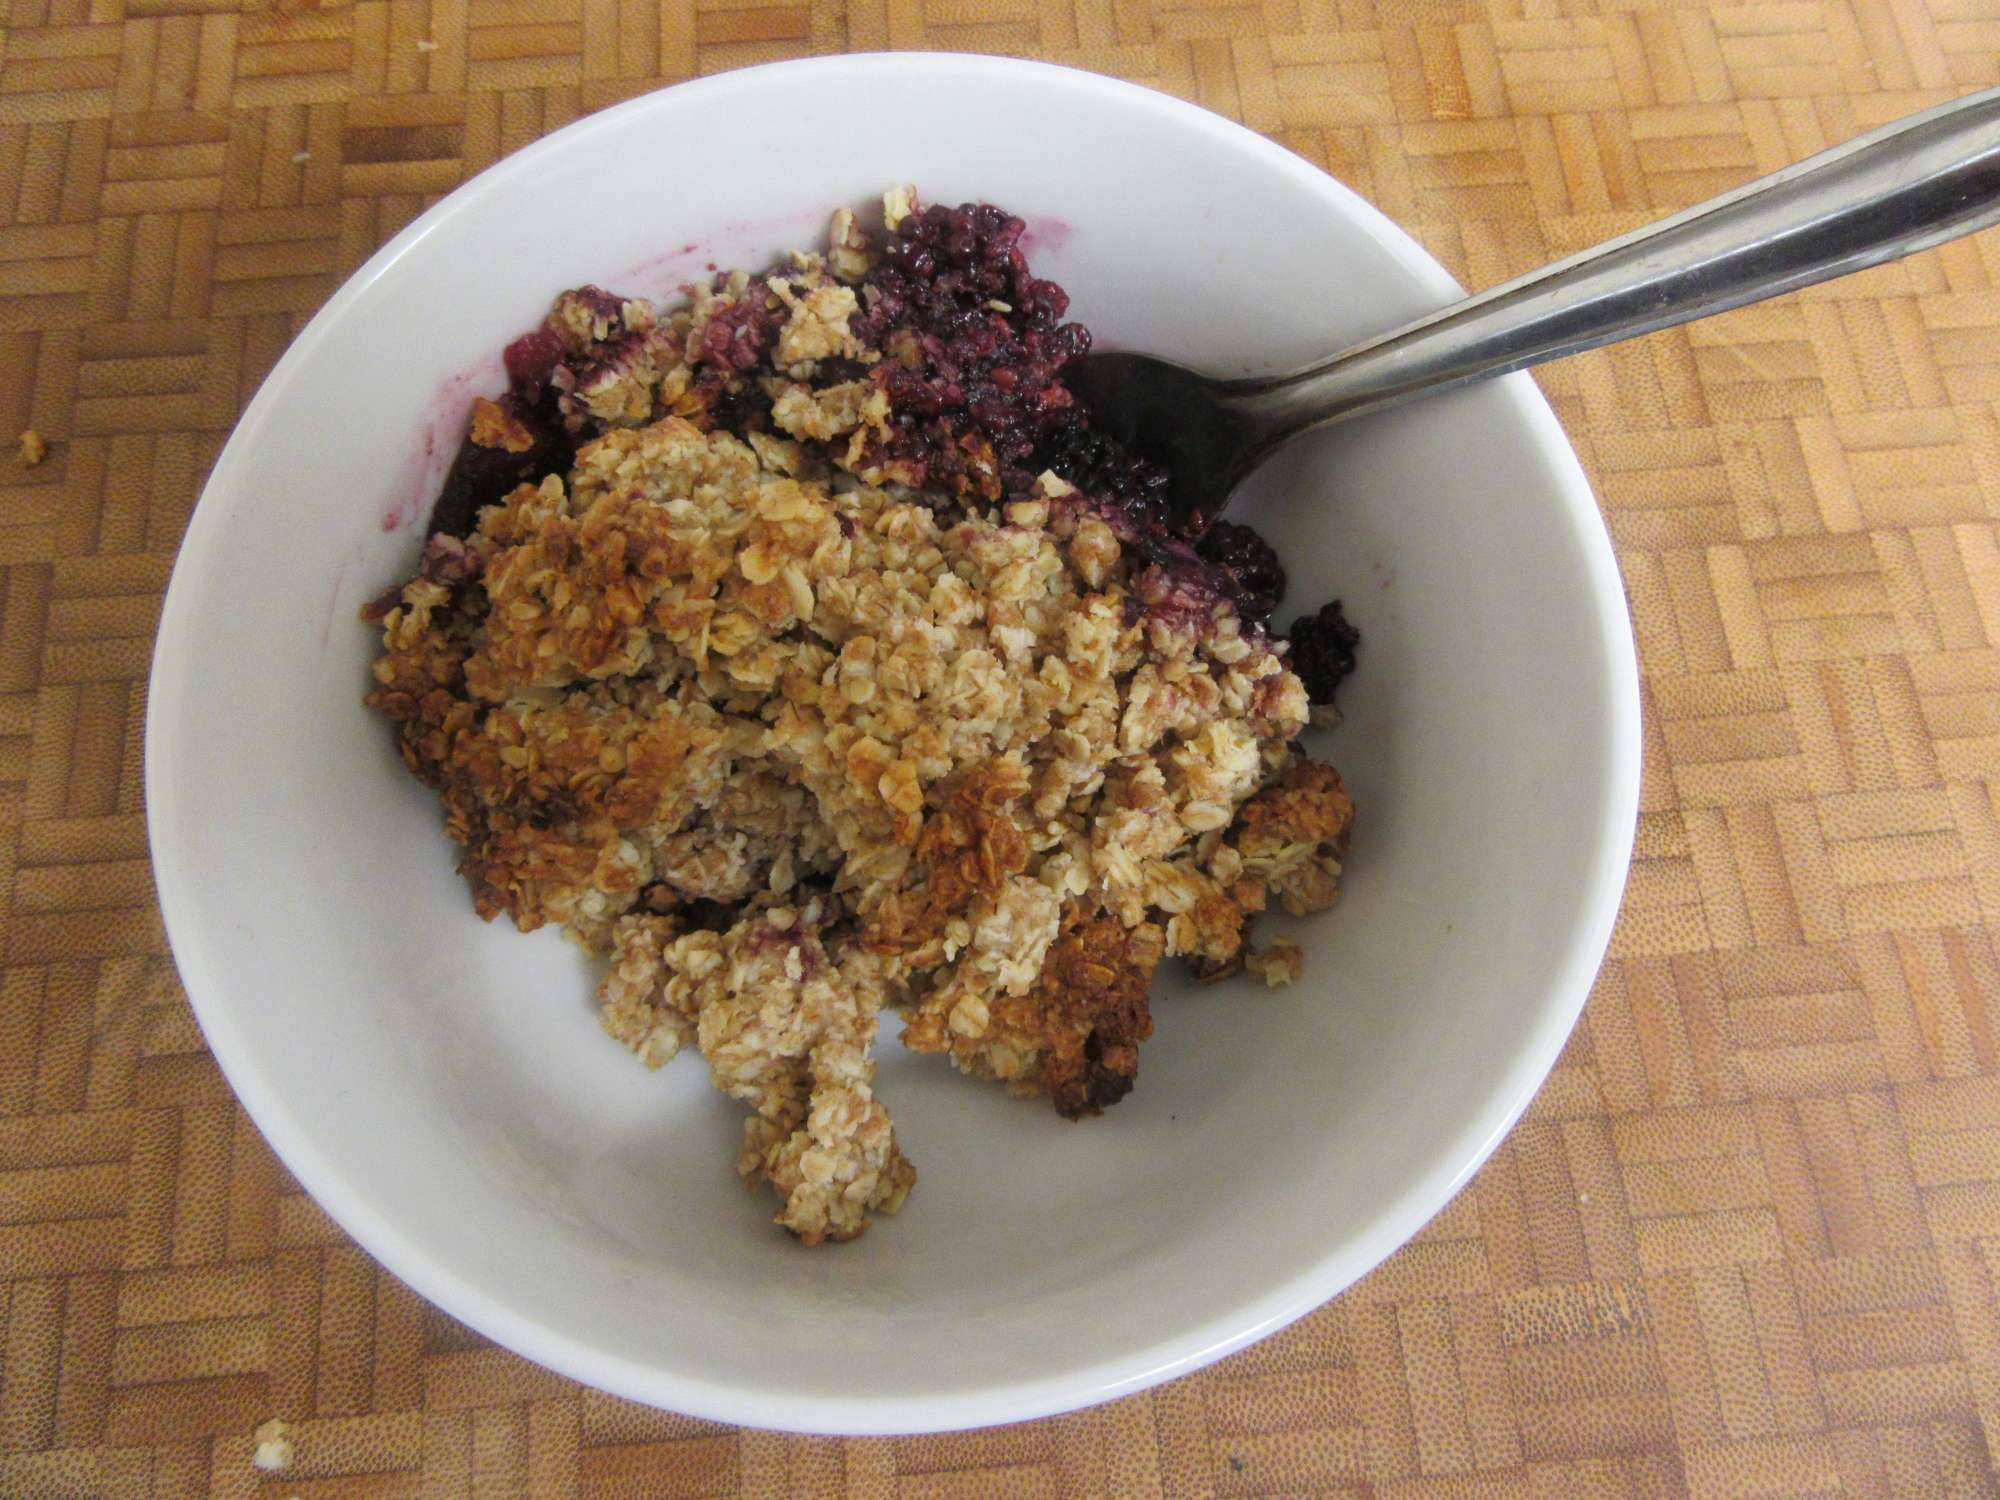 Apple and blackberry crumble